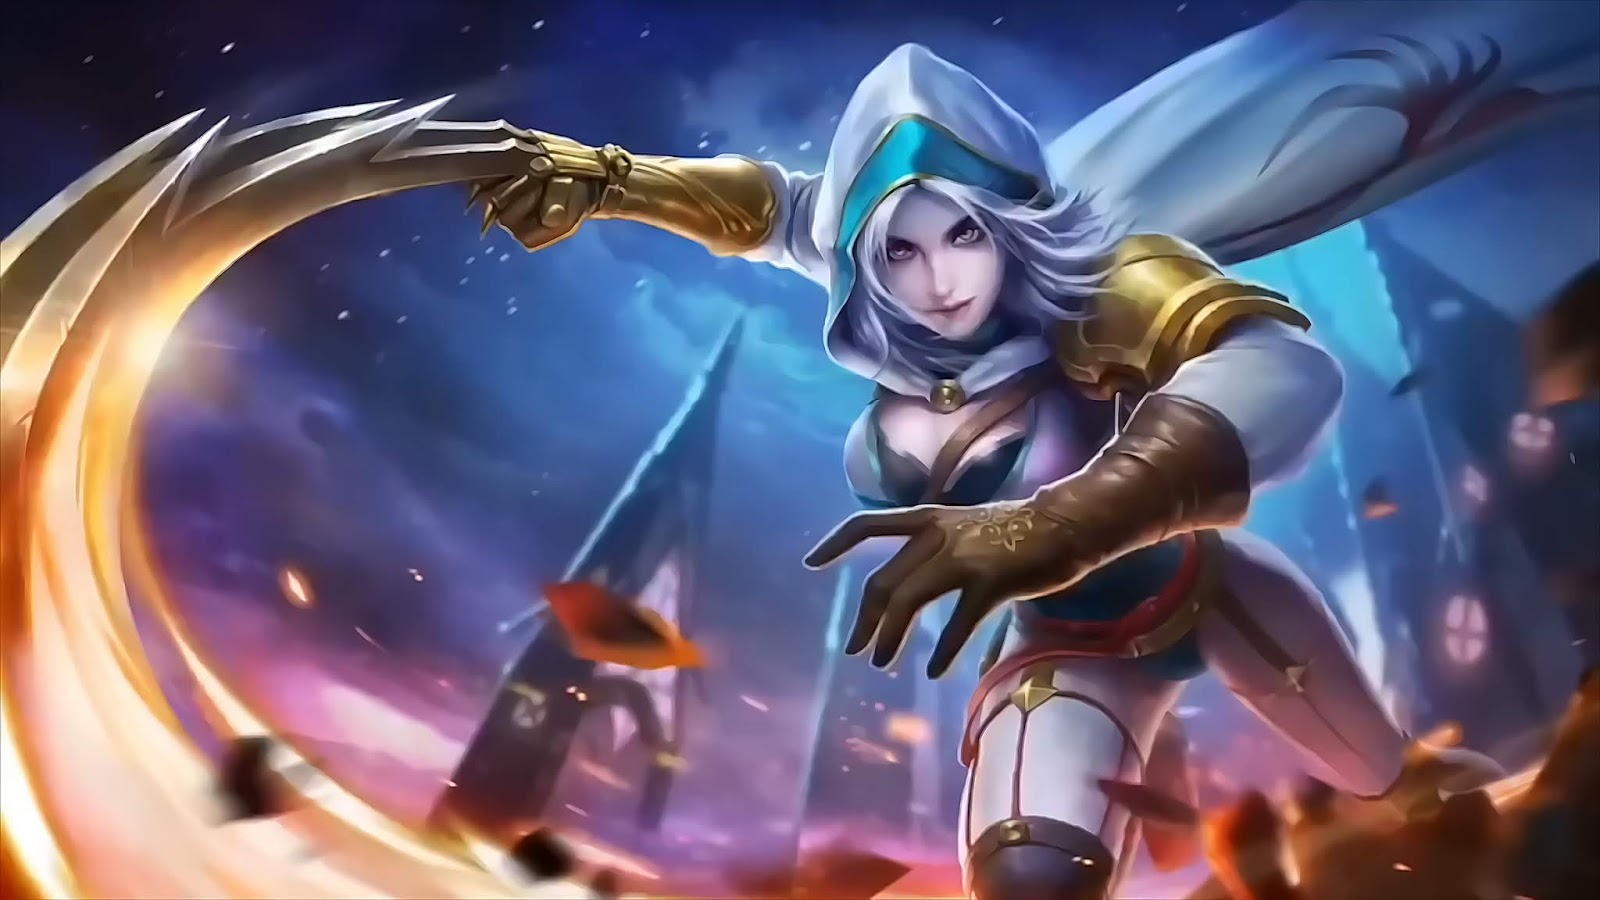 Wallpaper Natalia Mobile Legends Bright Claw Old Full HD for PC